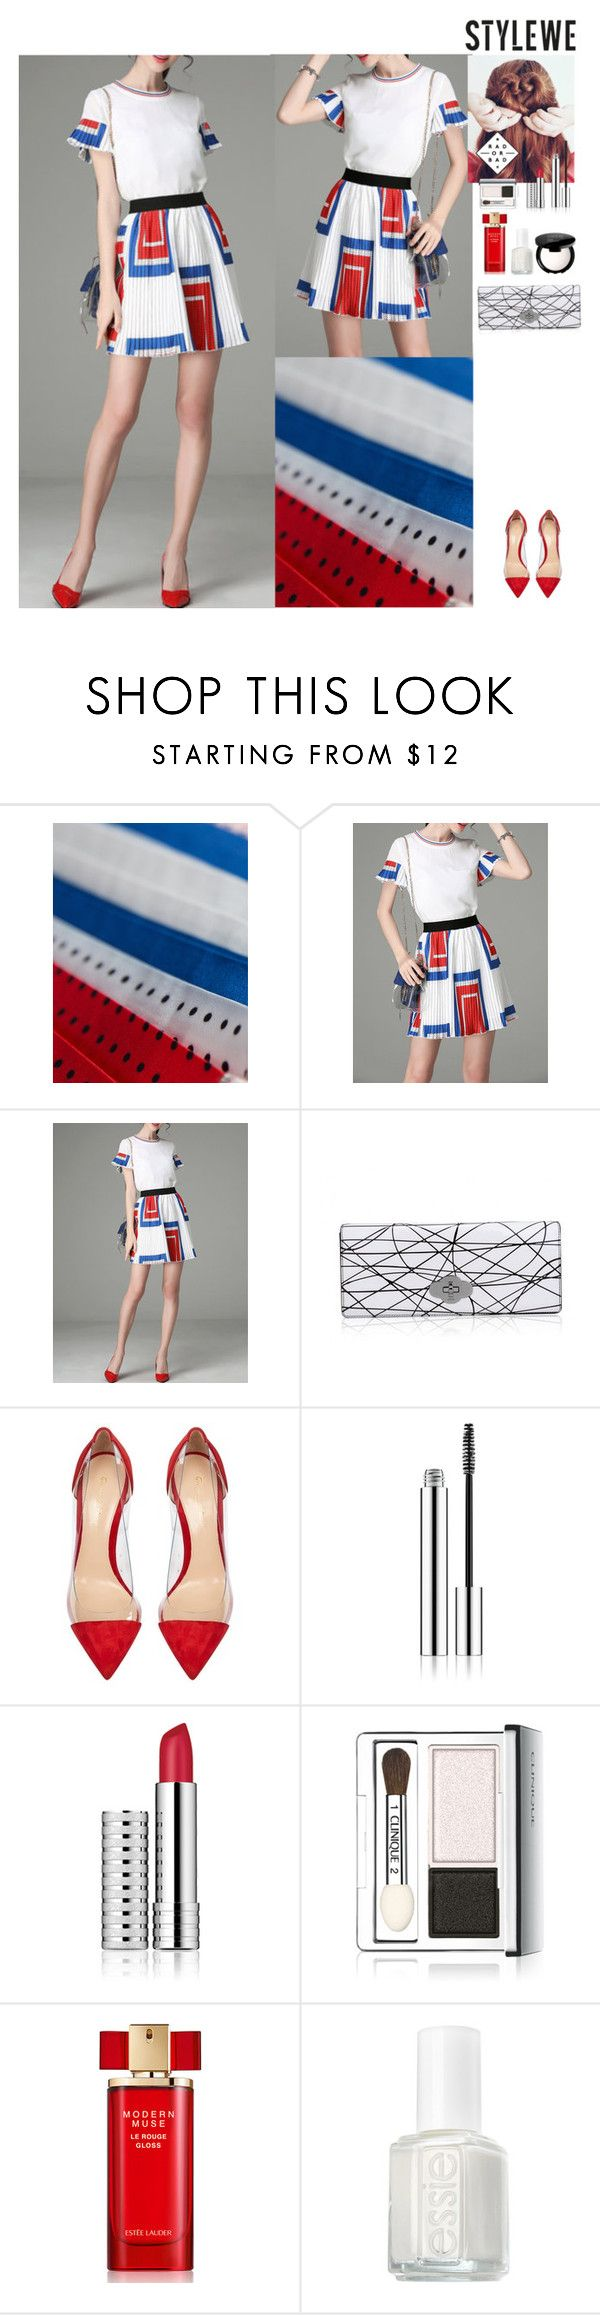 Outfit StyleWe by eliza-redkina on Polyvore featuring мода, Gianvito Rossi, MAKE UP FOR EVER, Estée Lauder, Essie, outfit, like, look and stylewe